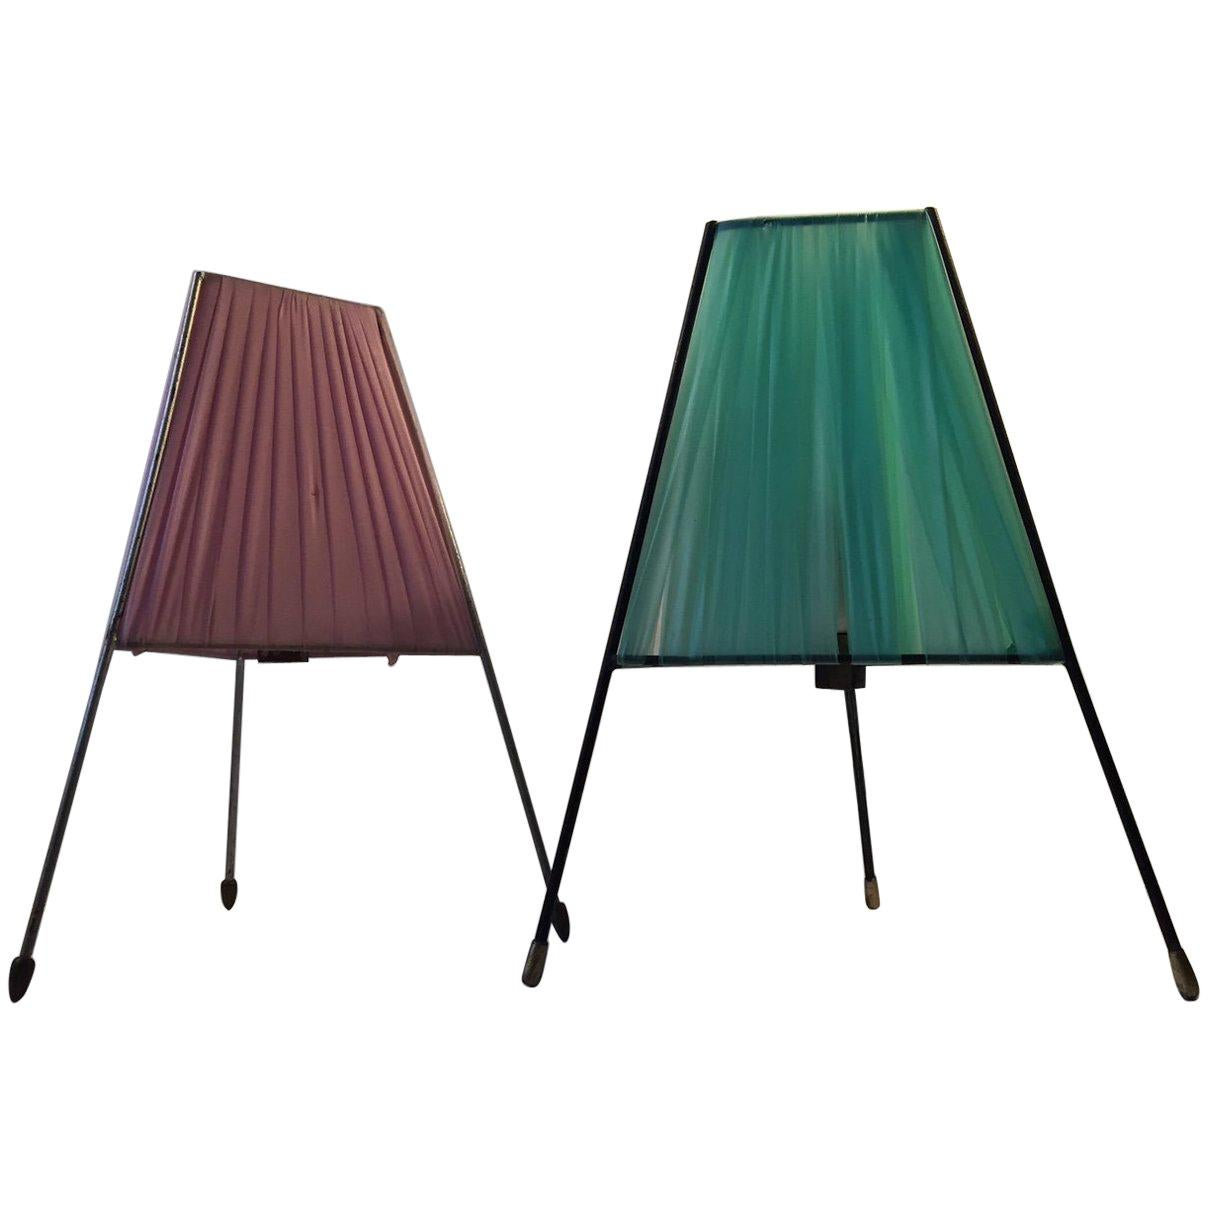 Pair of Italian Modernist Tripod Table Lamps with Brass Feet, 1950s